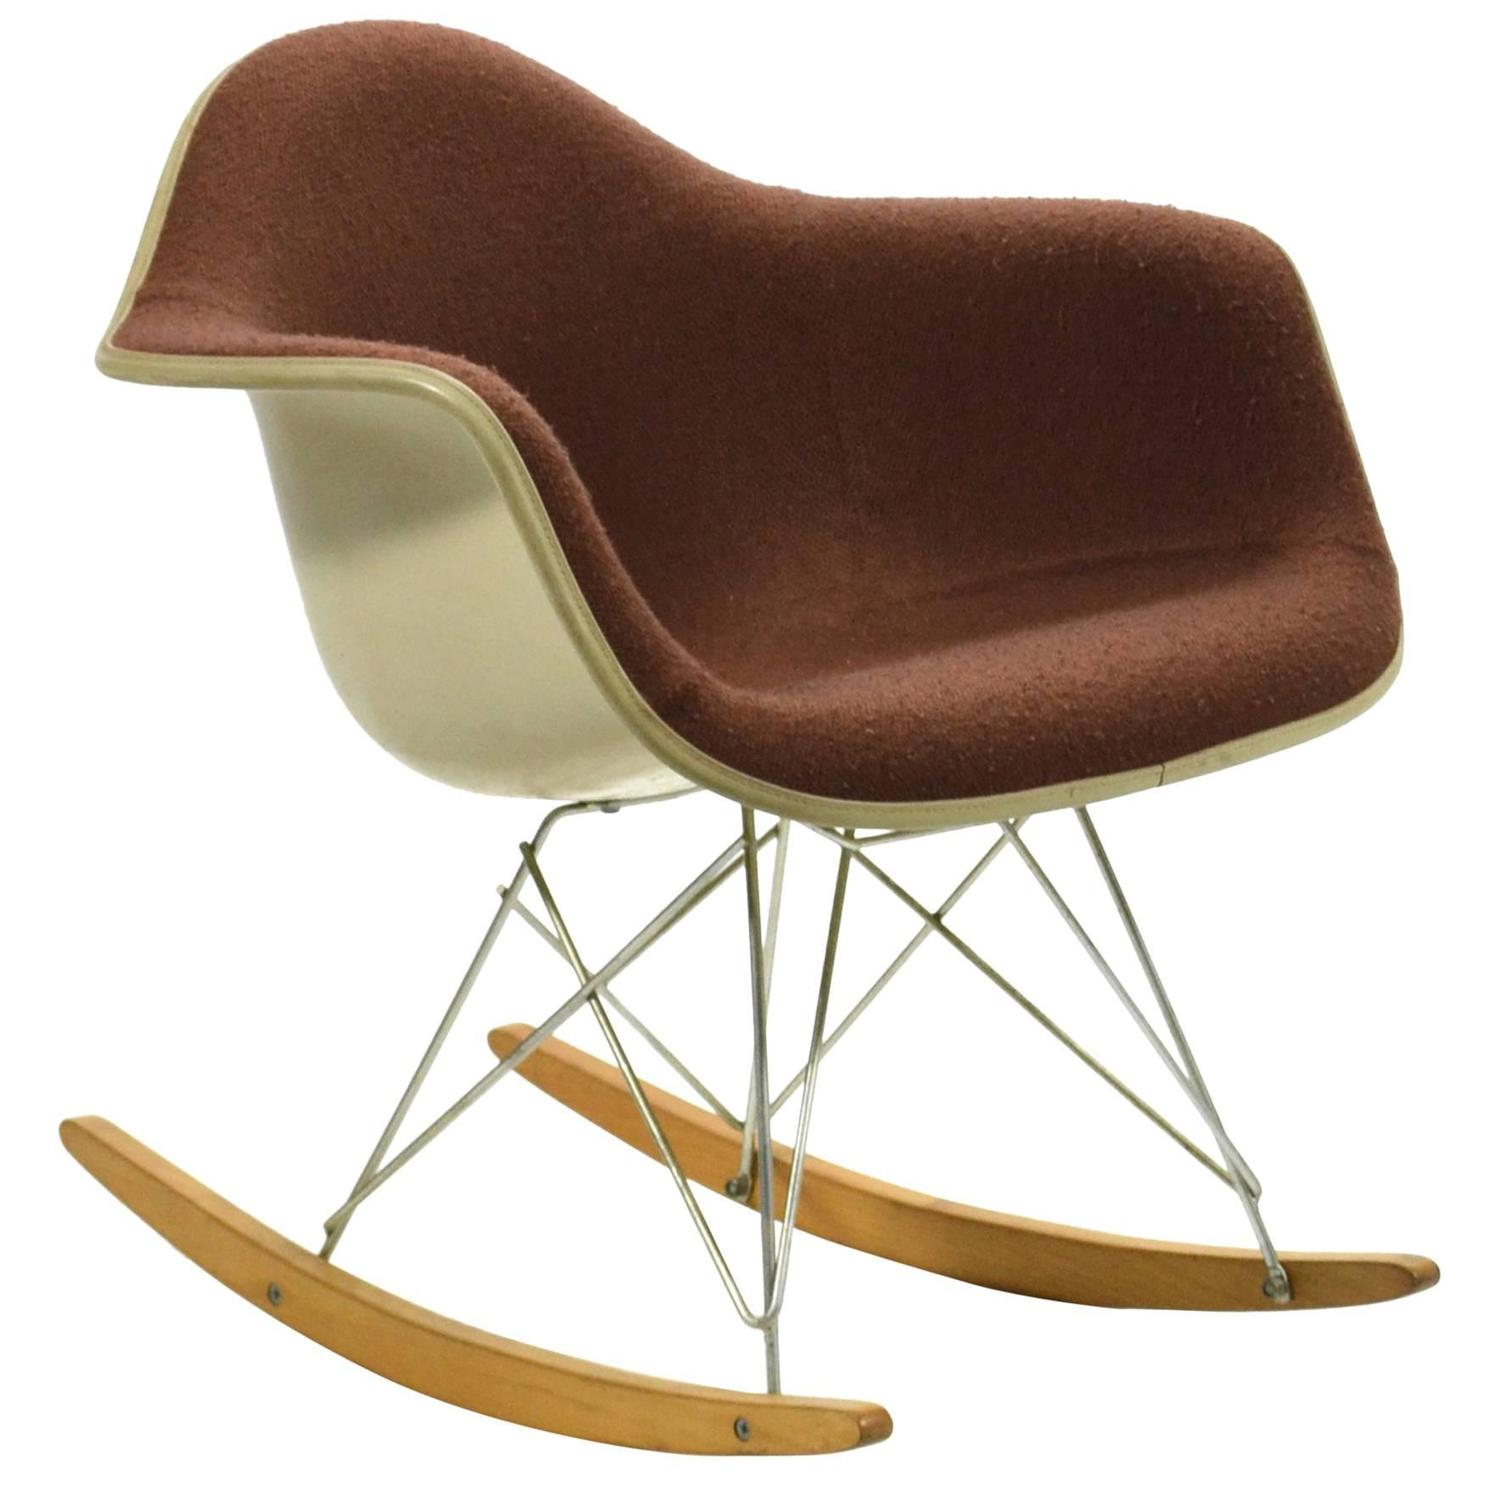 Charles and Ray Eames Rocking Chairs 24 For Sale at 1stdibs